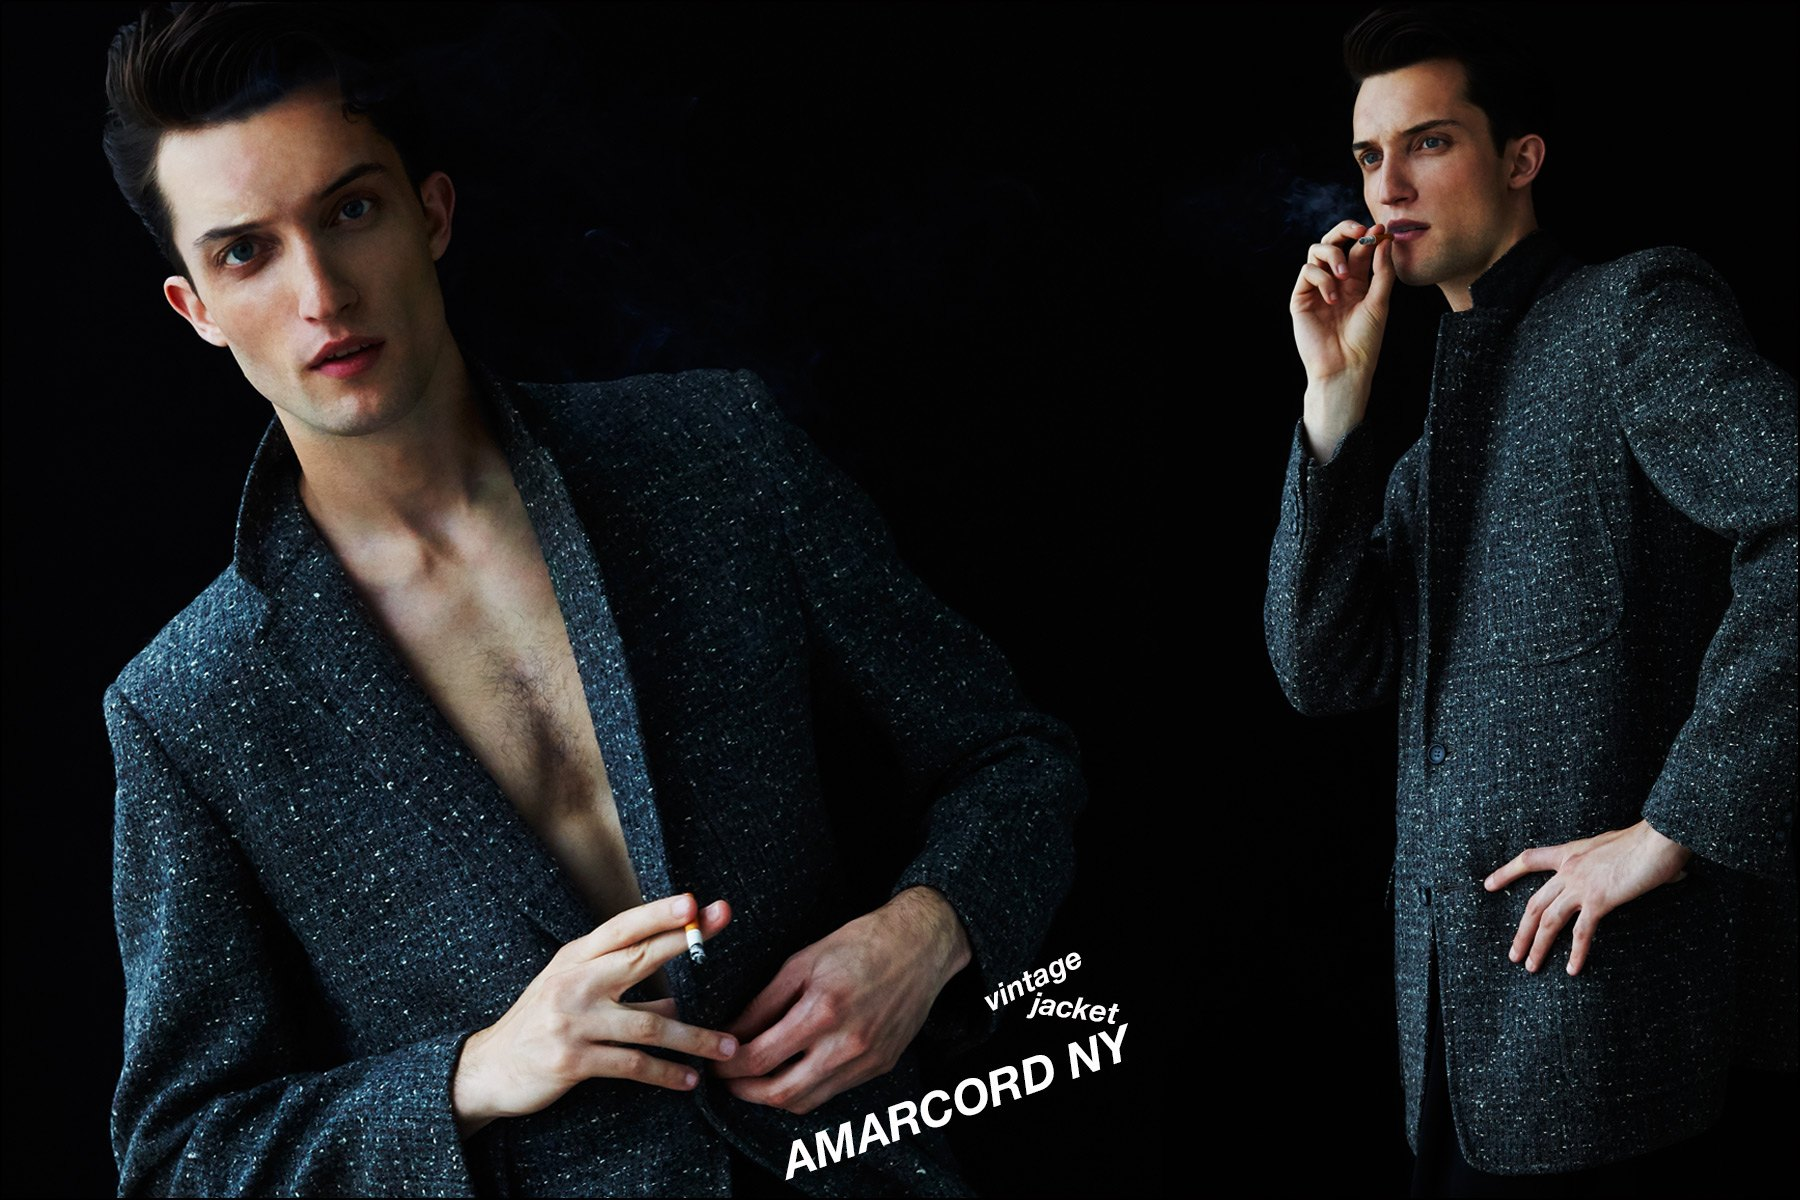 Max Von Isser, with the Fusion Agency NY, photographed in suit jackets. Photography by Alexander Thompson for Ponyboy magazine NY.